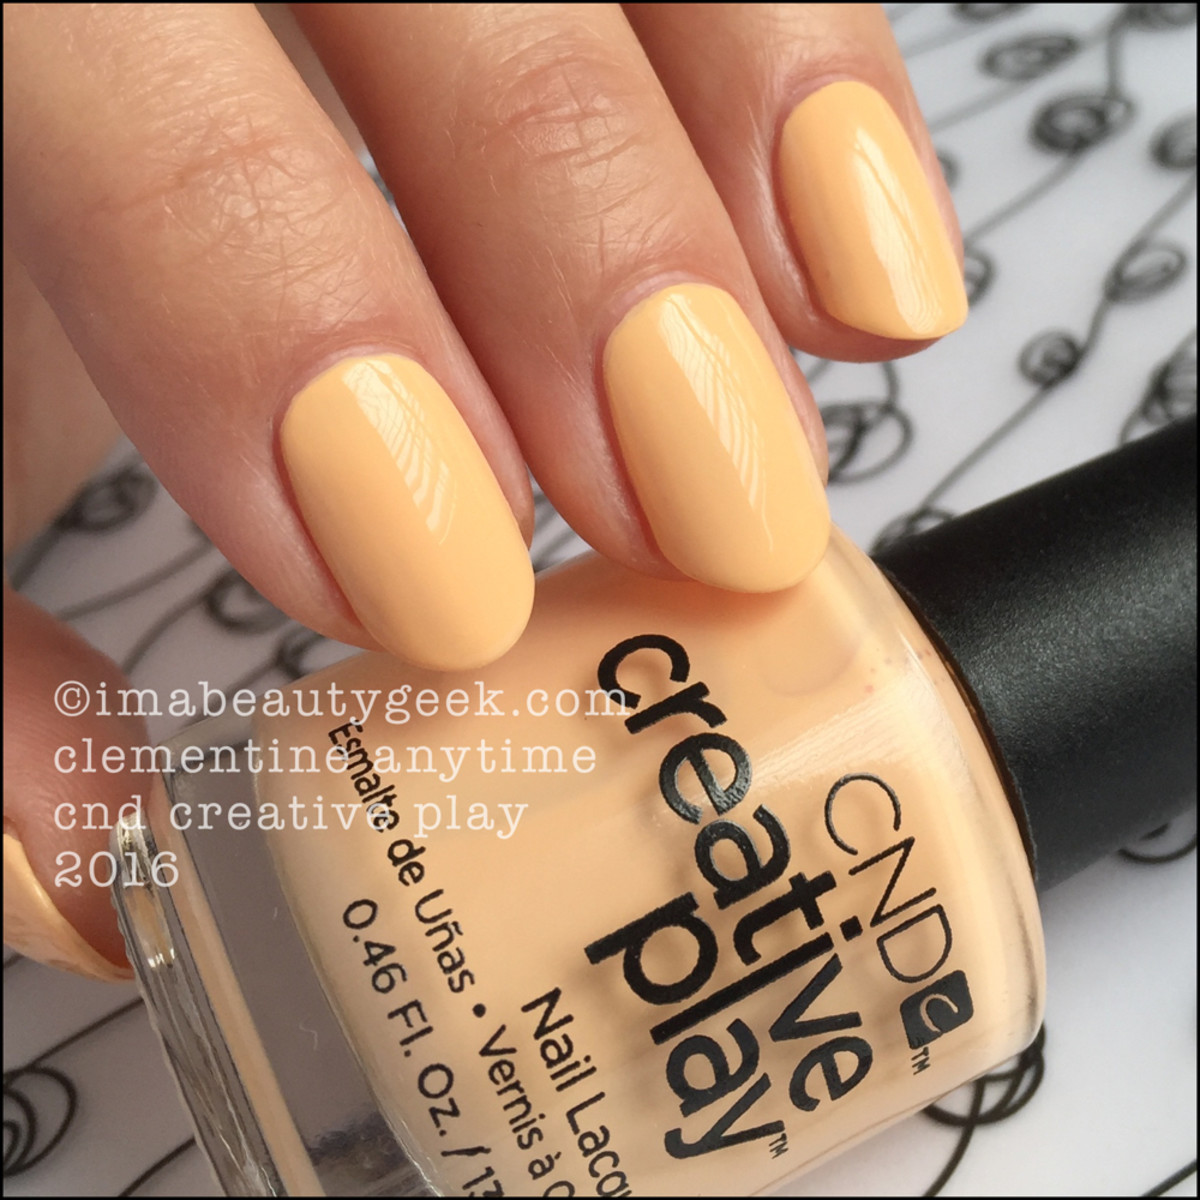 CND Creative Play Clementine Anytime_CND Creative Play Nail Swatches 2016